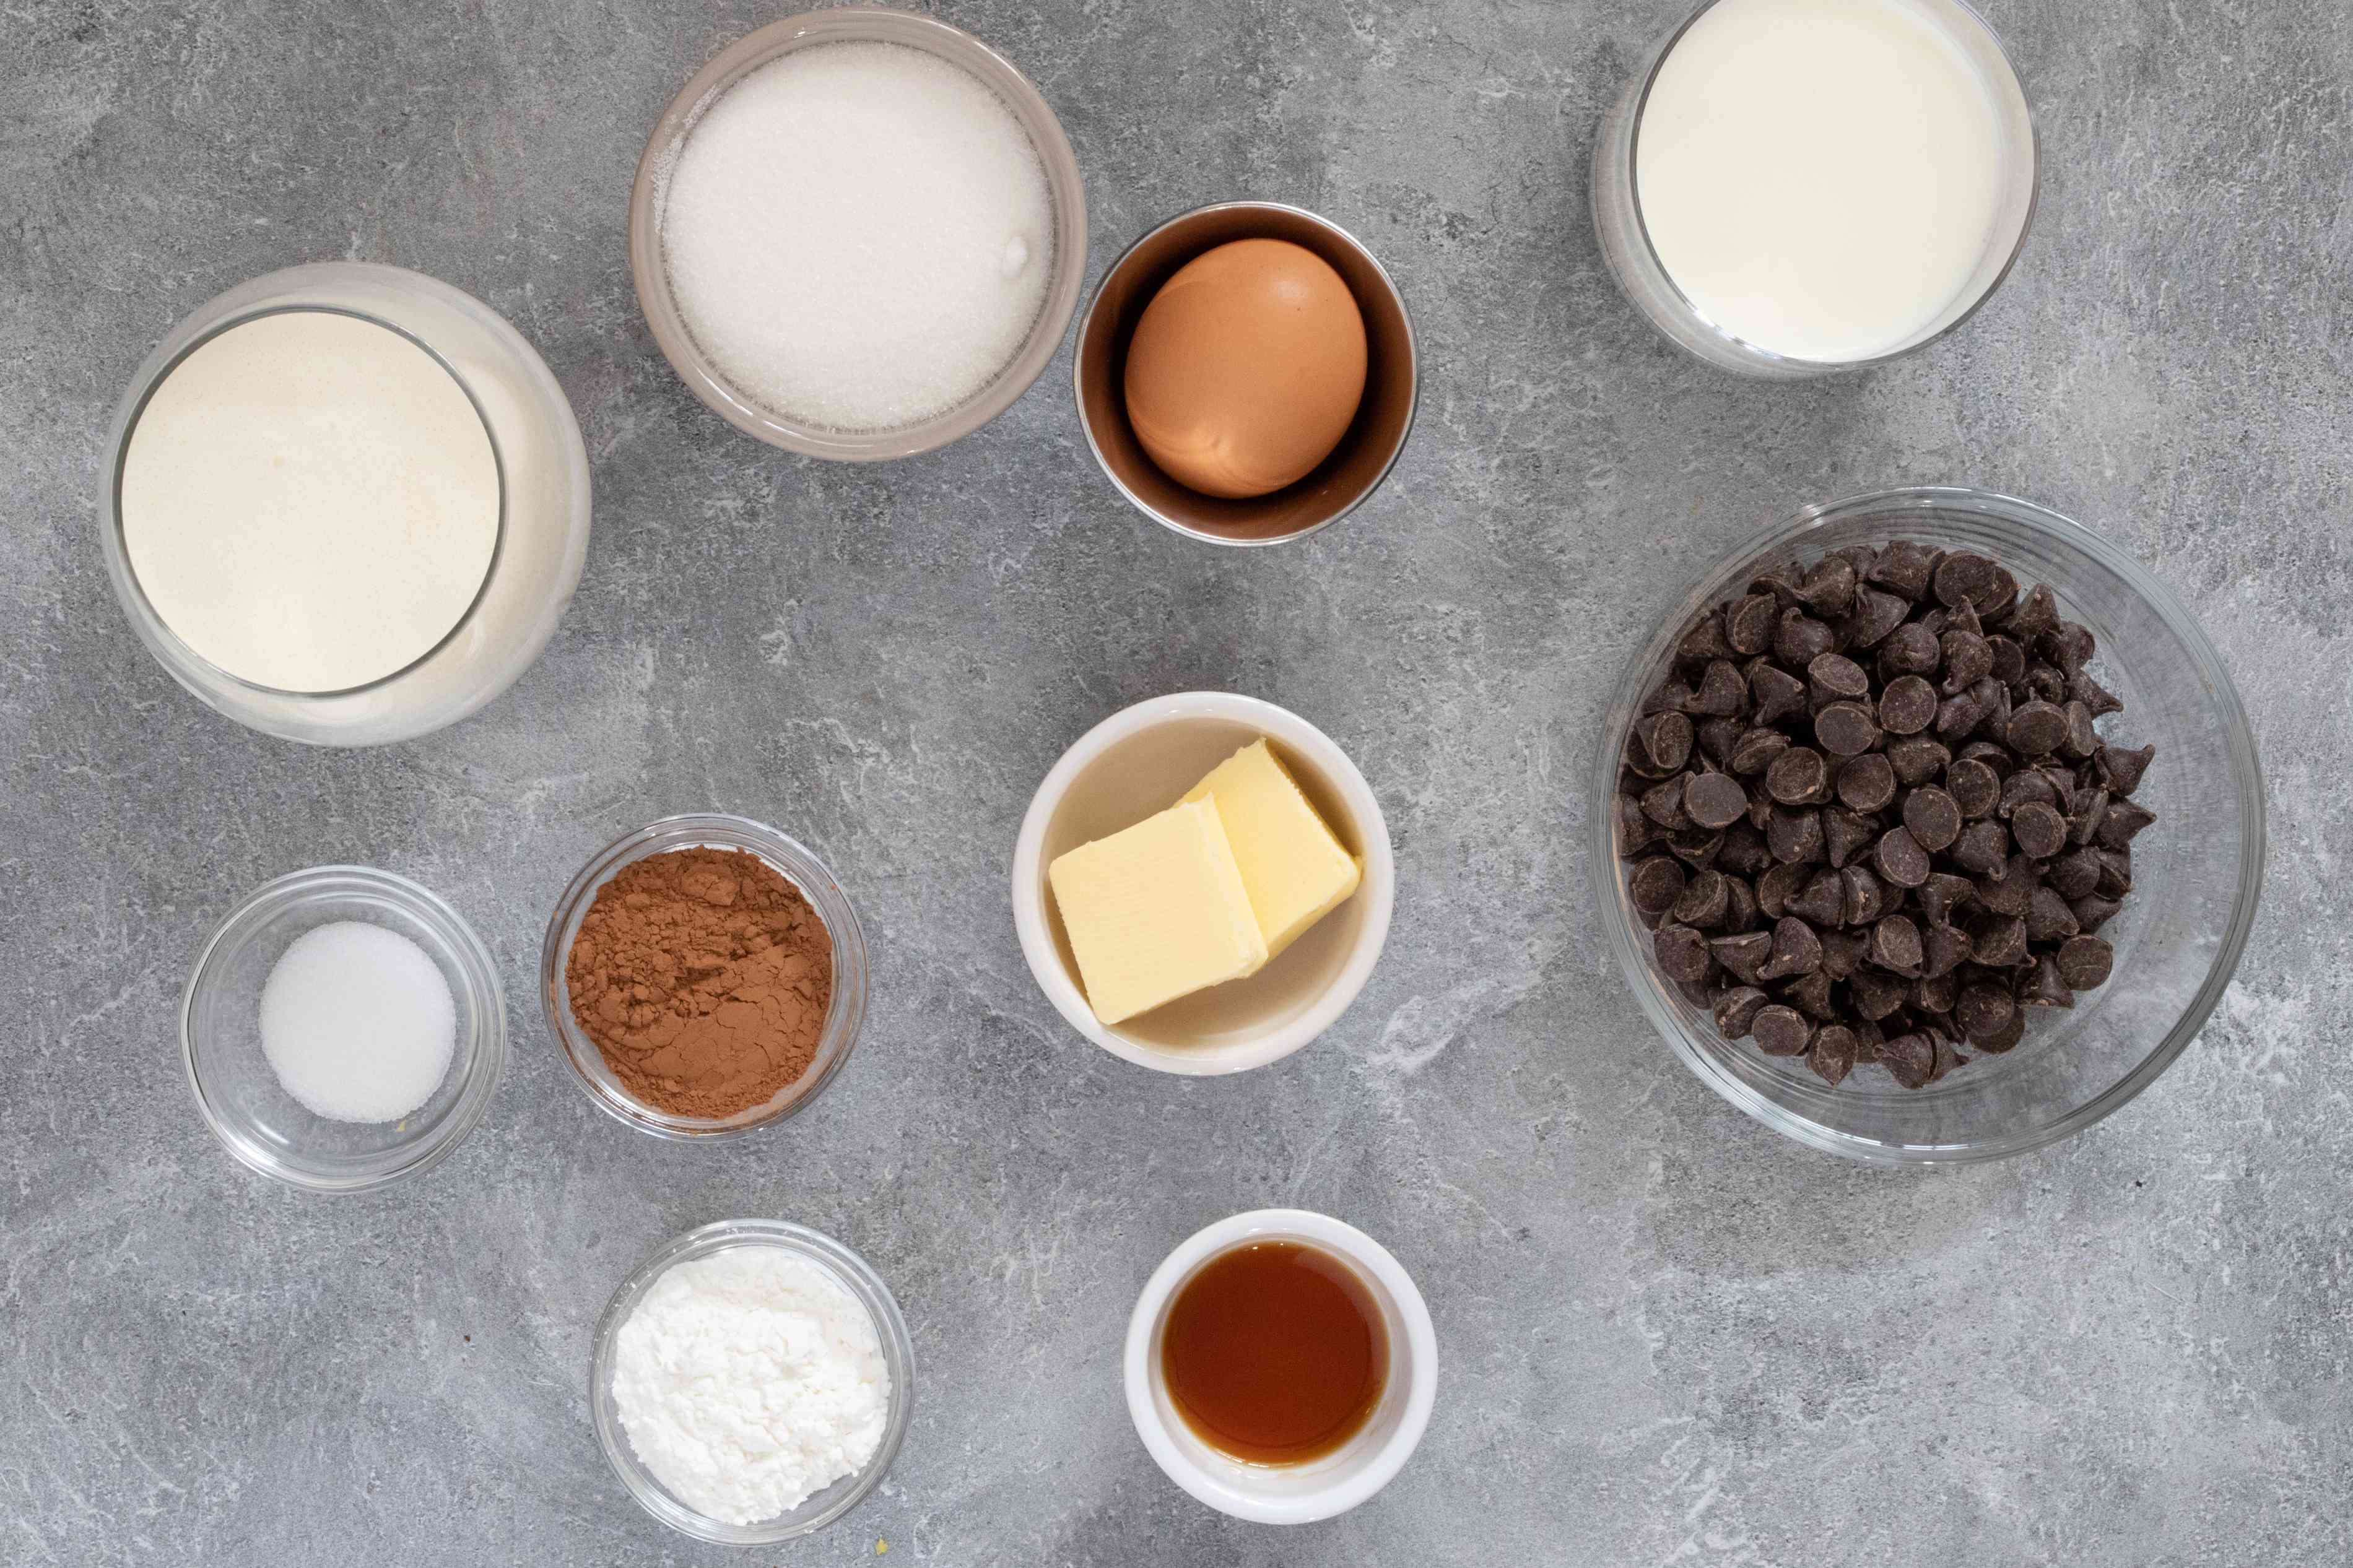 ingredients for the chocolate doberge cake filling